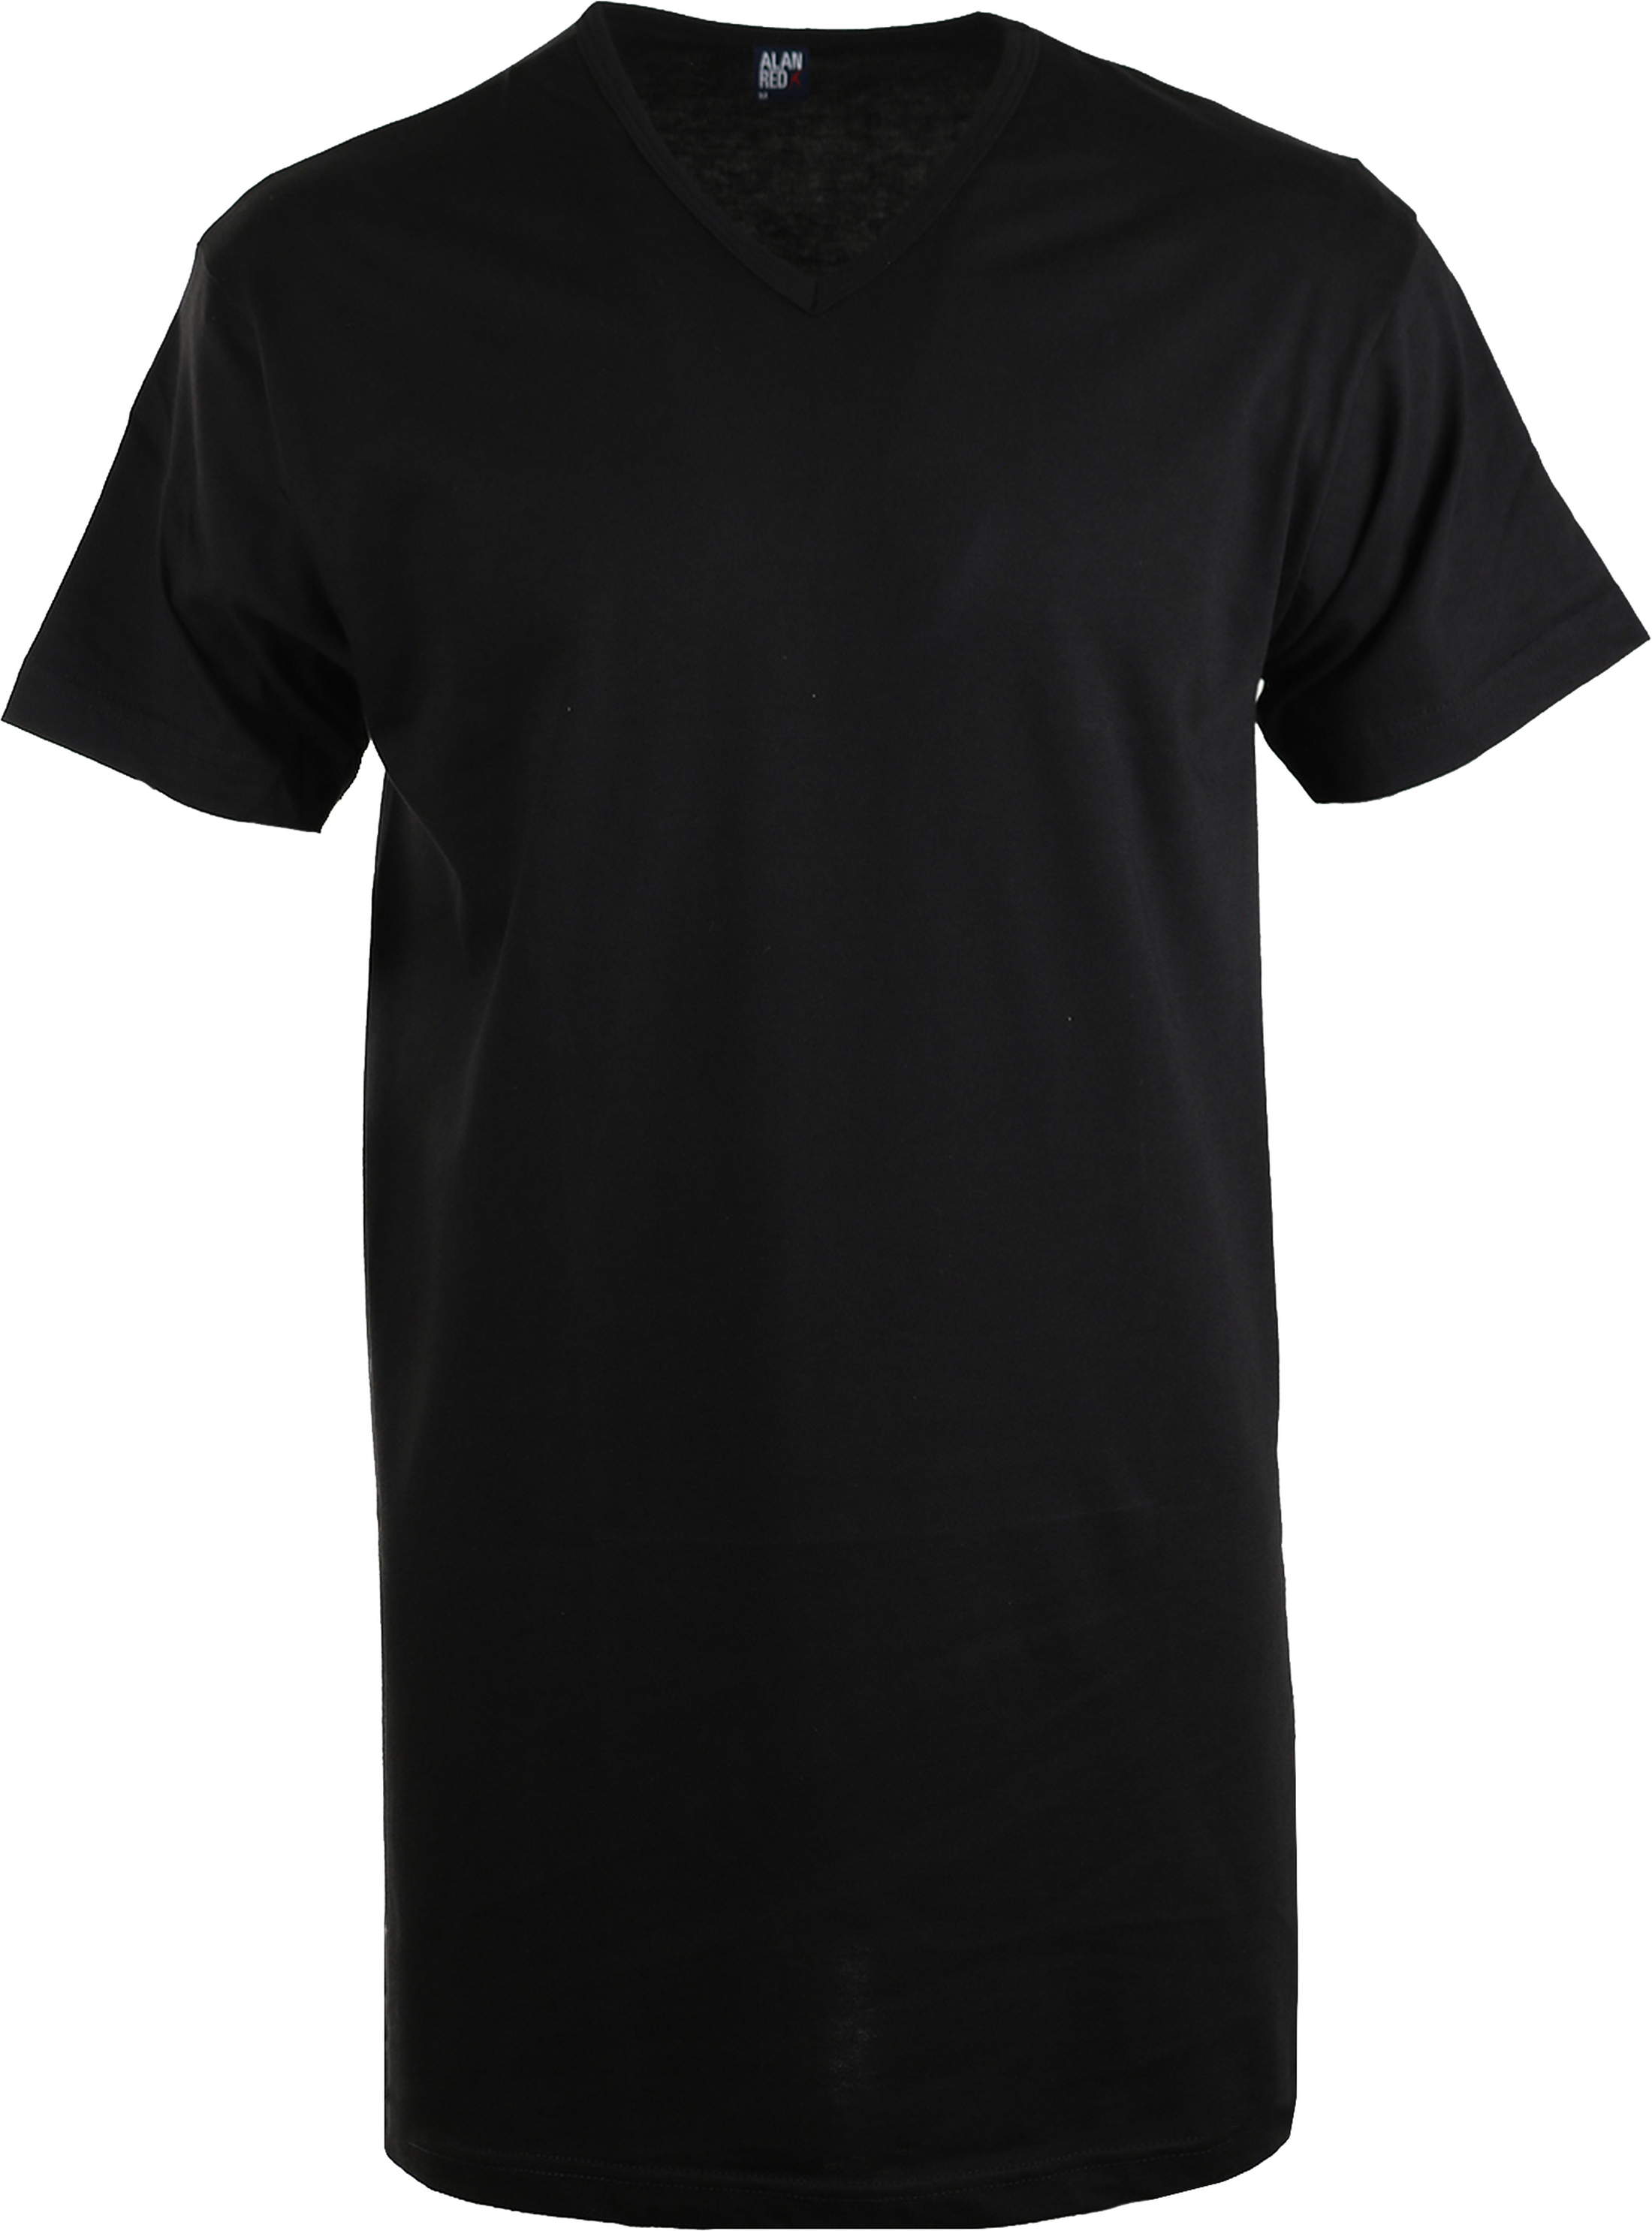 Alan Red Extra Long T-Shirt Vermont Black (1pack) foto 0